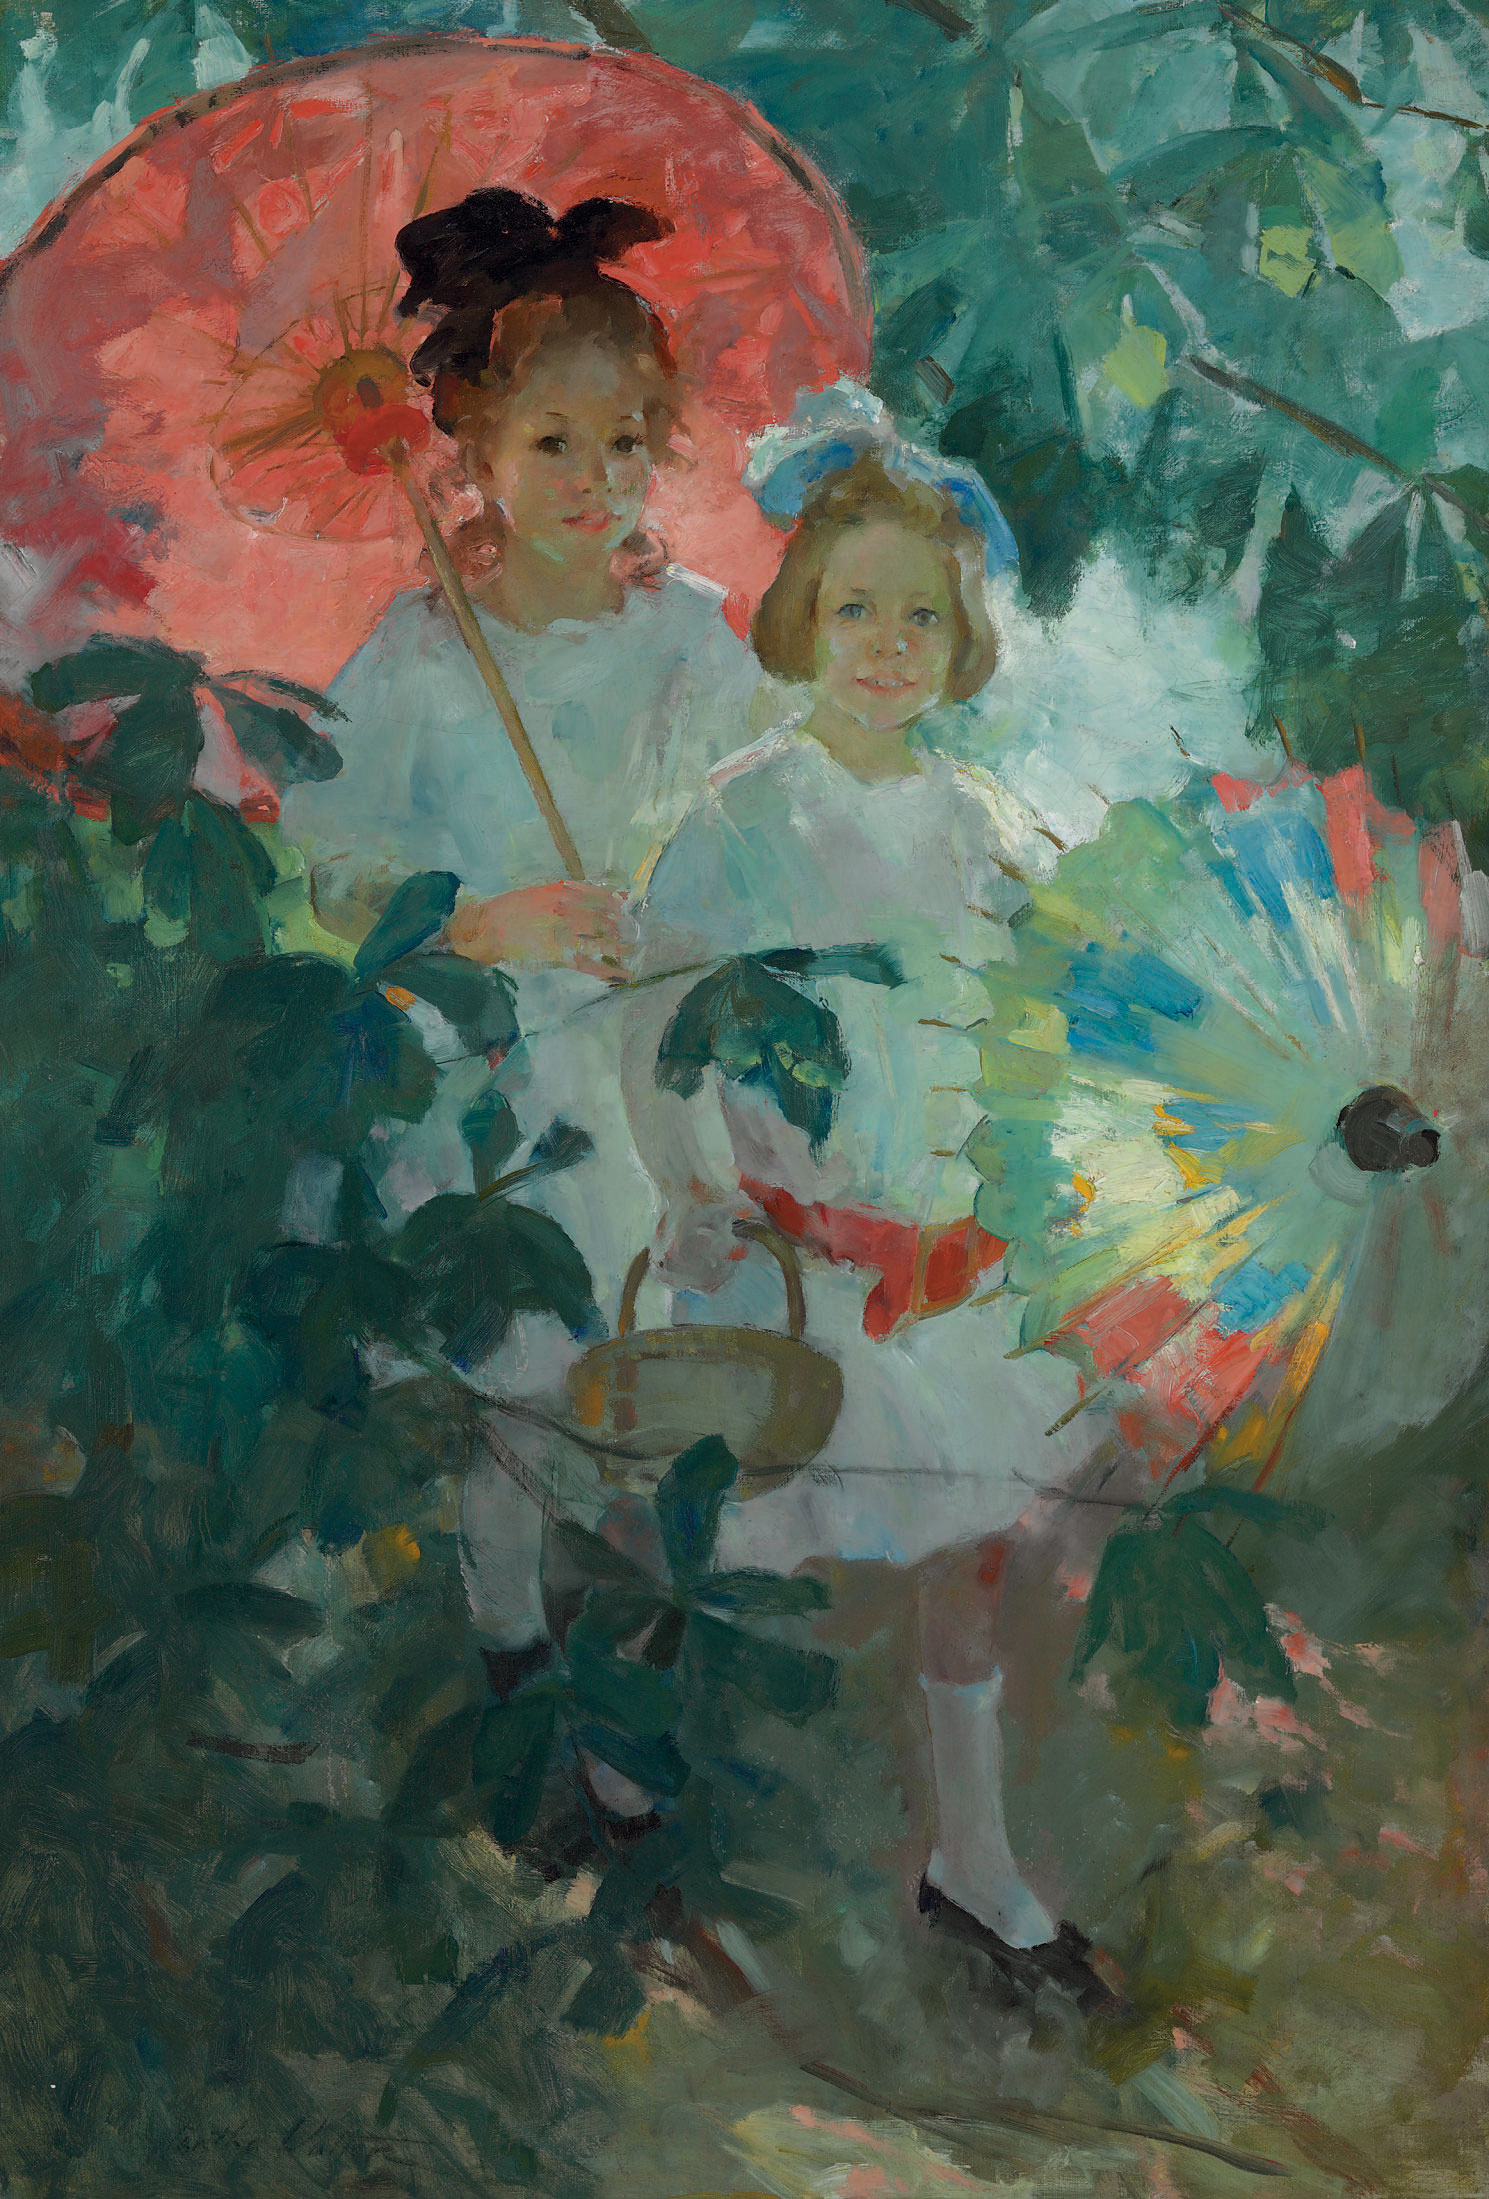 Children with Japanese Parasols